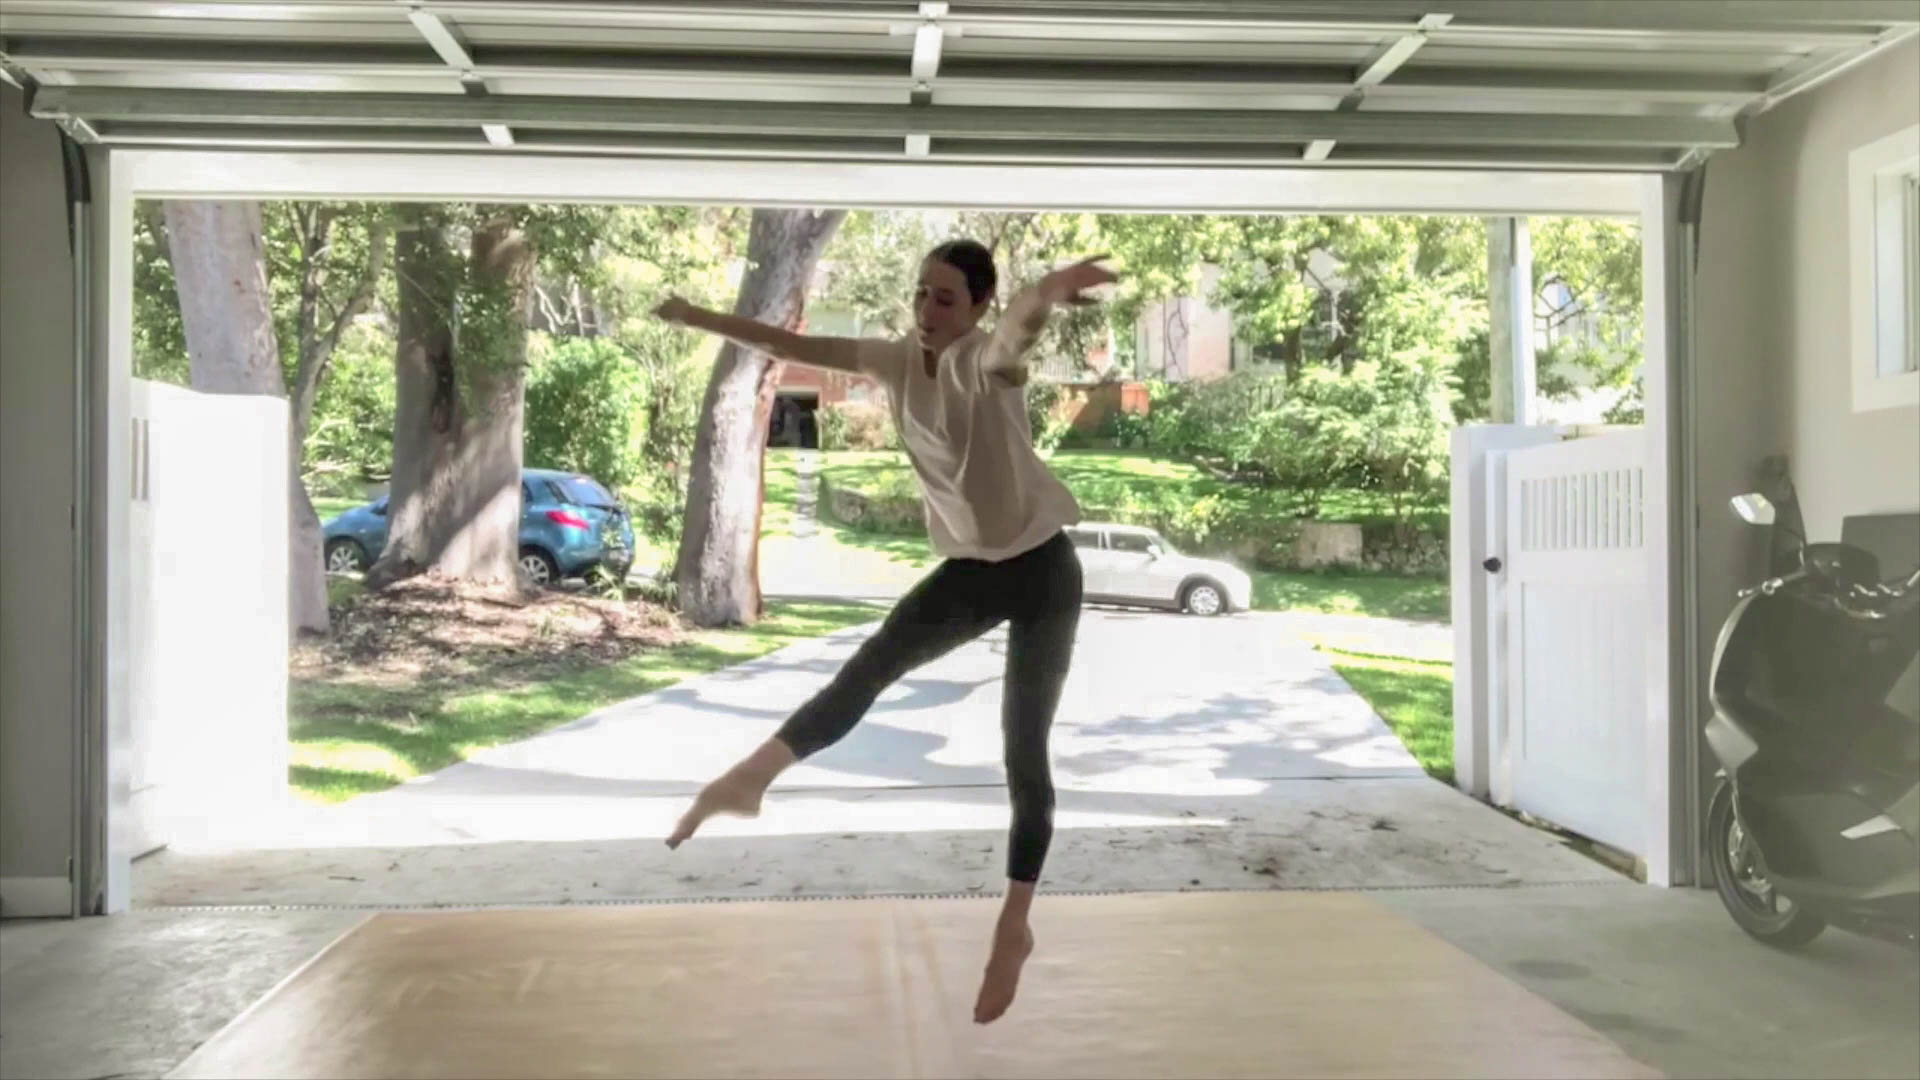 A student at home in her garage leaping backwards, with arms out and right leg pointed forwards.